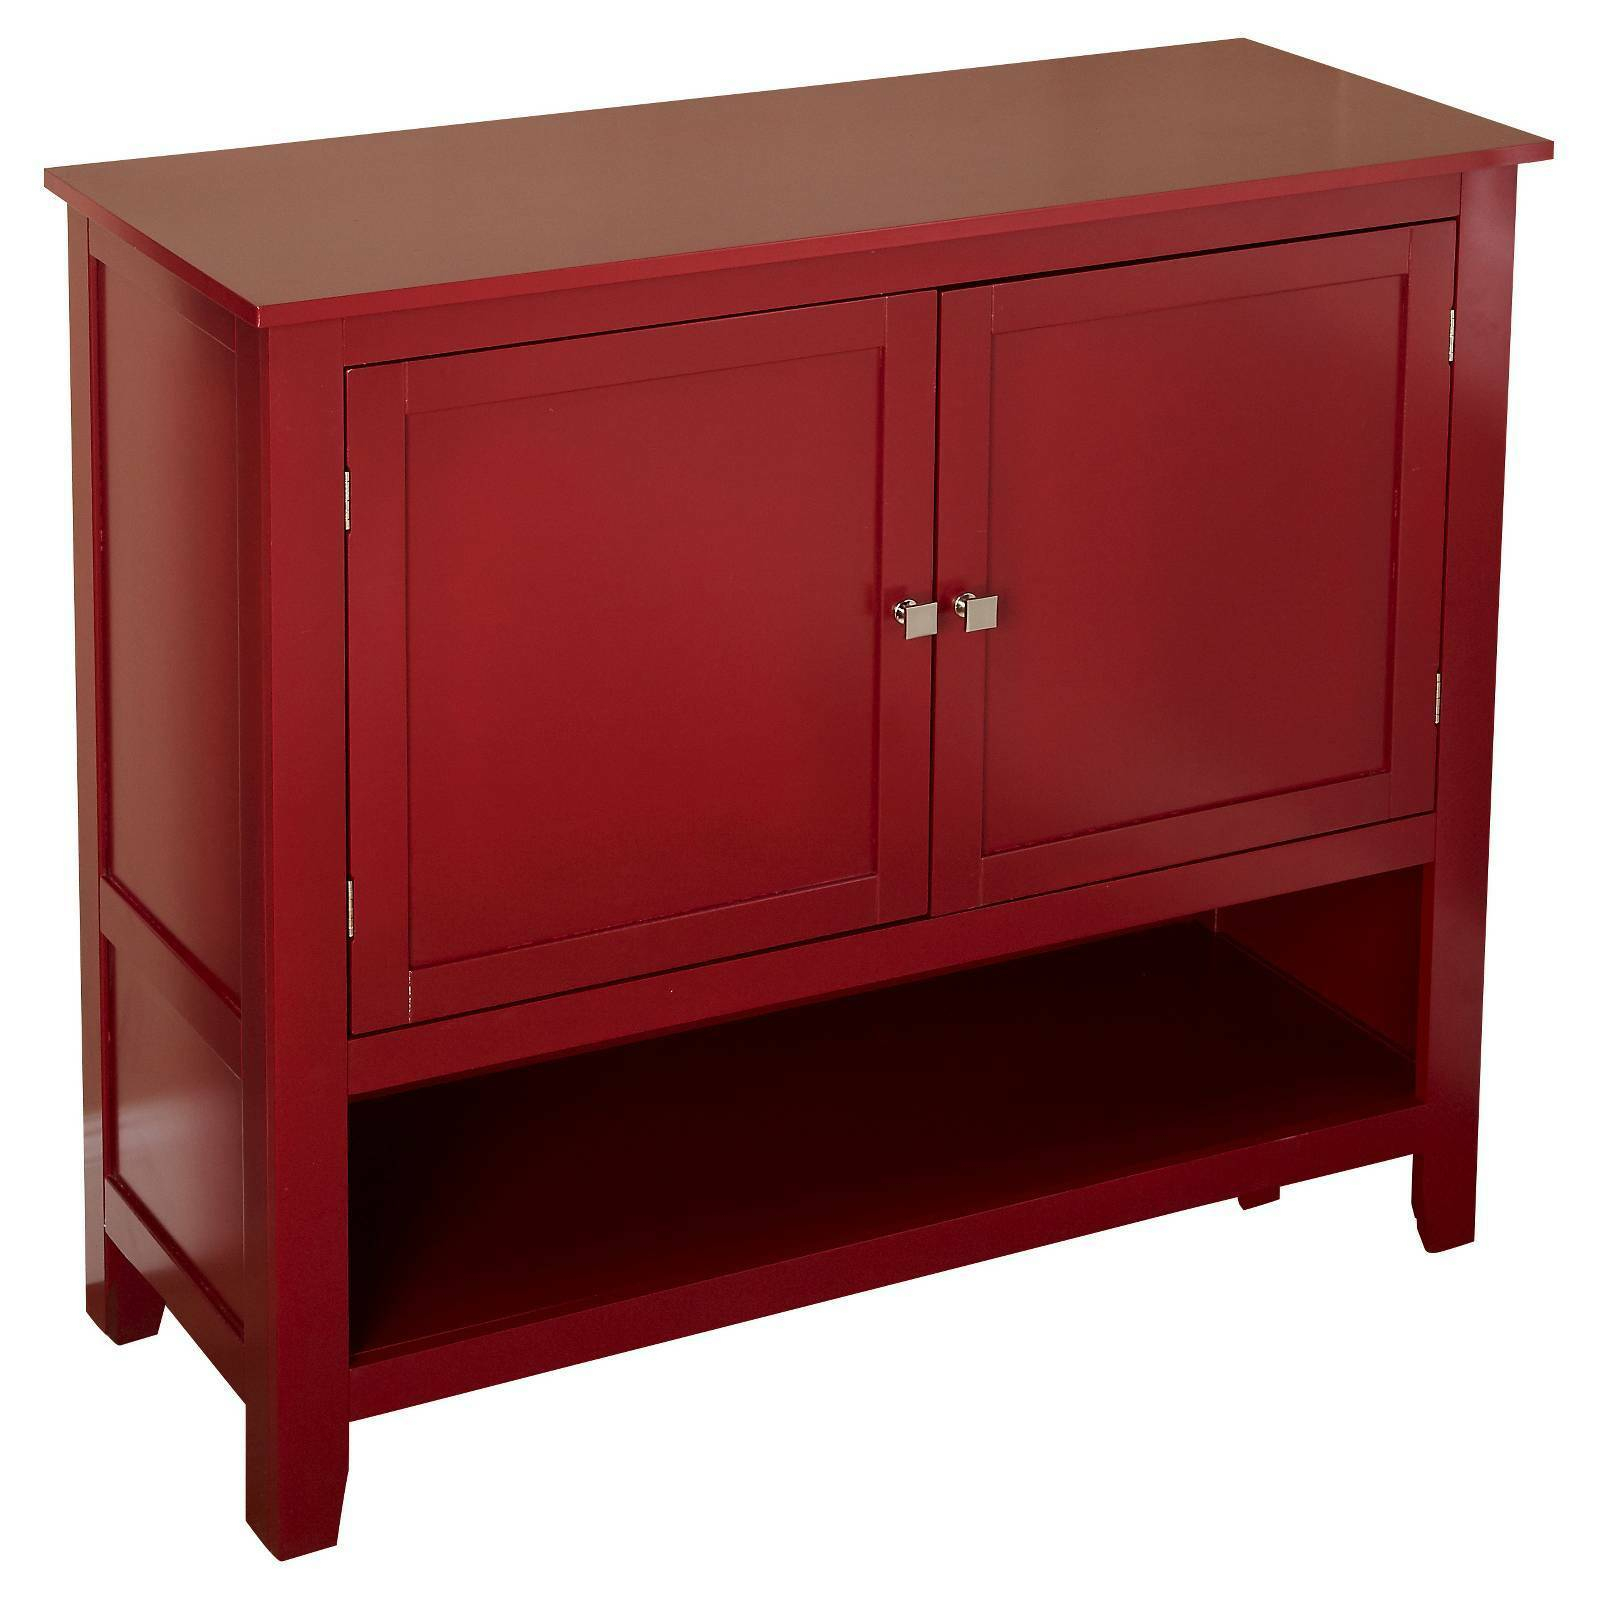 Red Montego Buffet Storage Cabinet Furniture Sideboard Vintage Server  Dining Set With Regard To Simple Living Red Montego Buffets (Gallery 10 of 30)